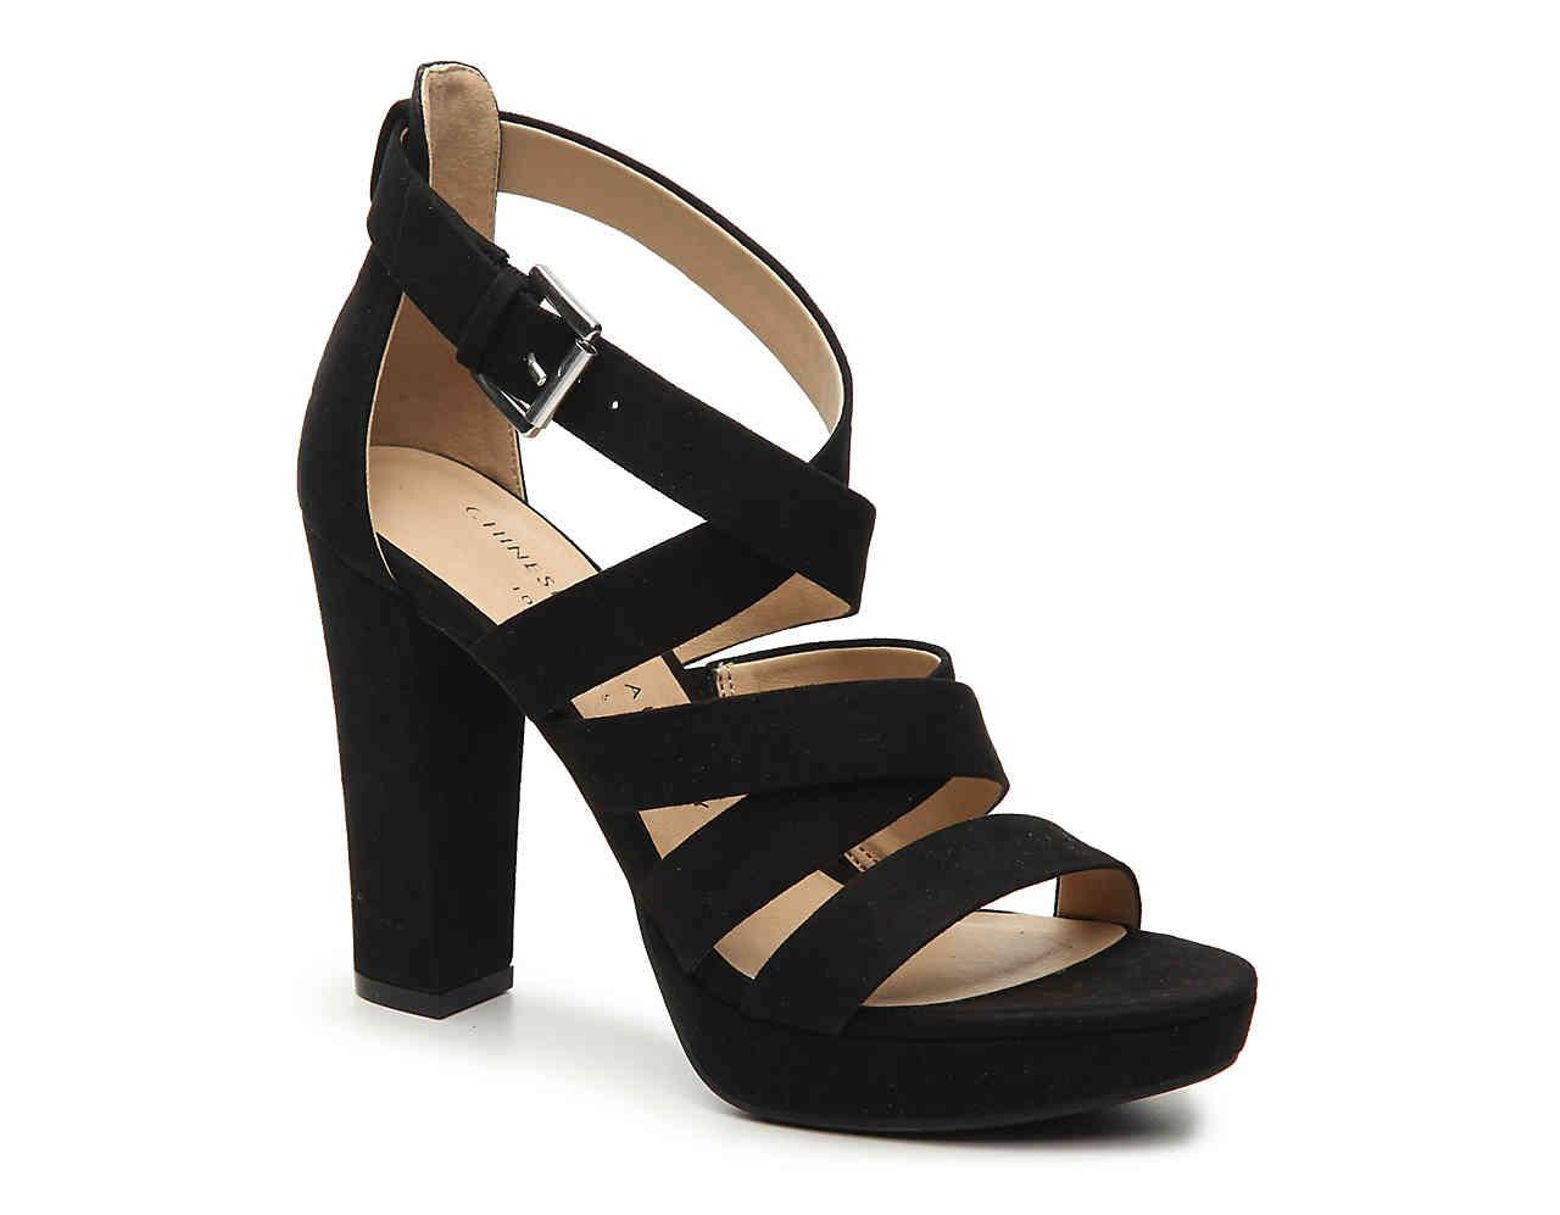 3eee5841a3 Chinese Laundry Amber Platform Sandal in Black - Lyst